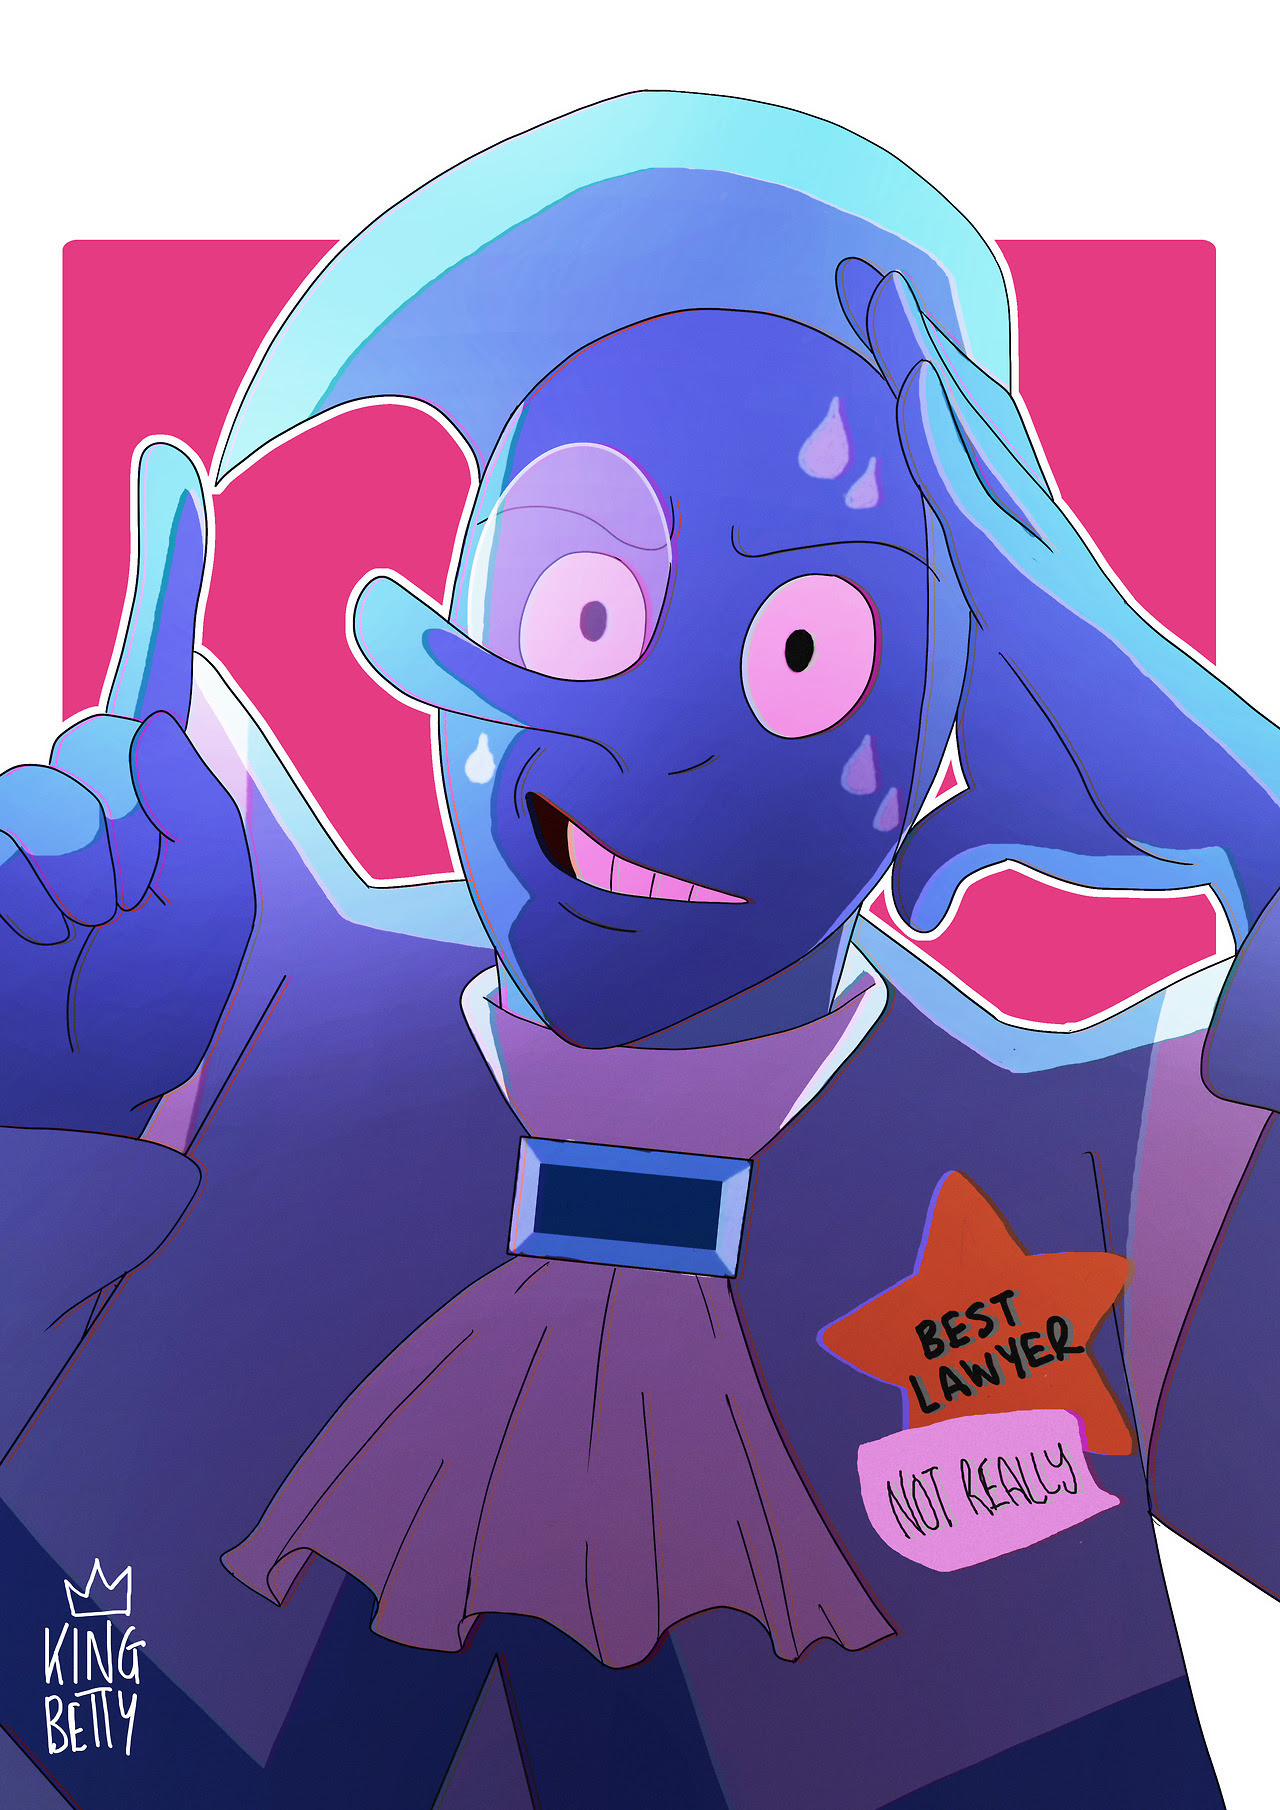 someone requested more blue zircon, so heres the nervous bae ;)